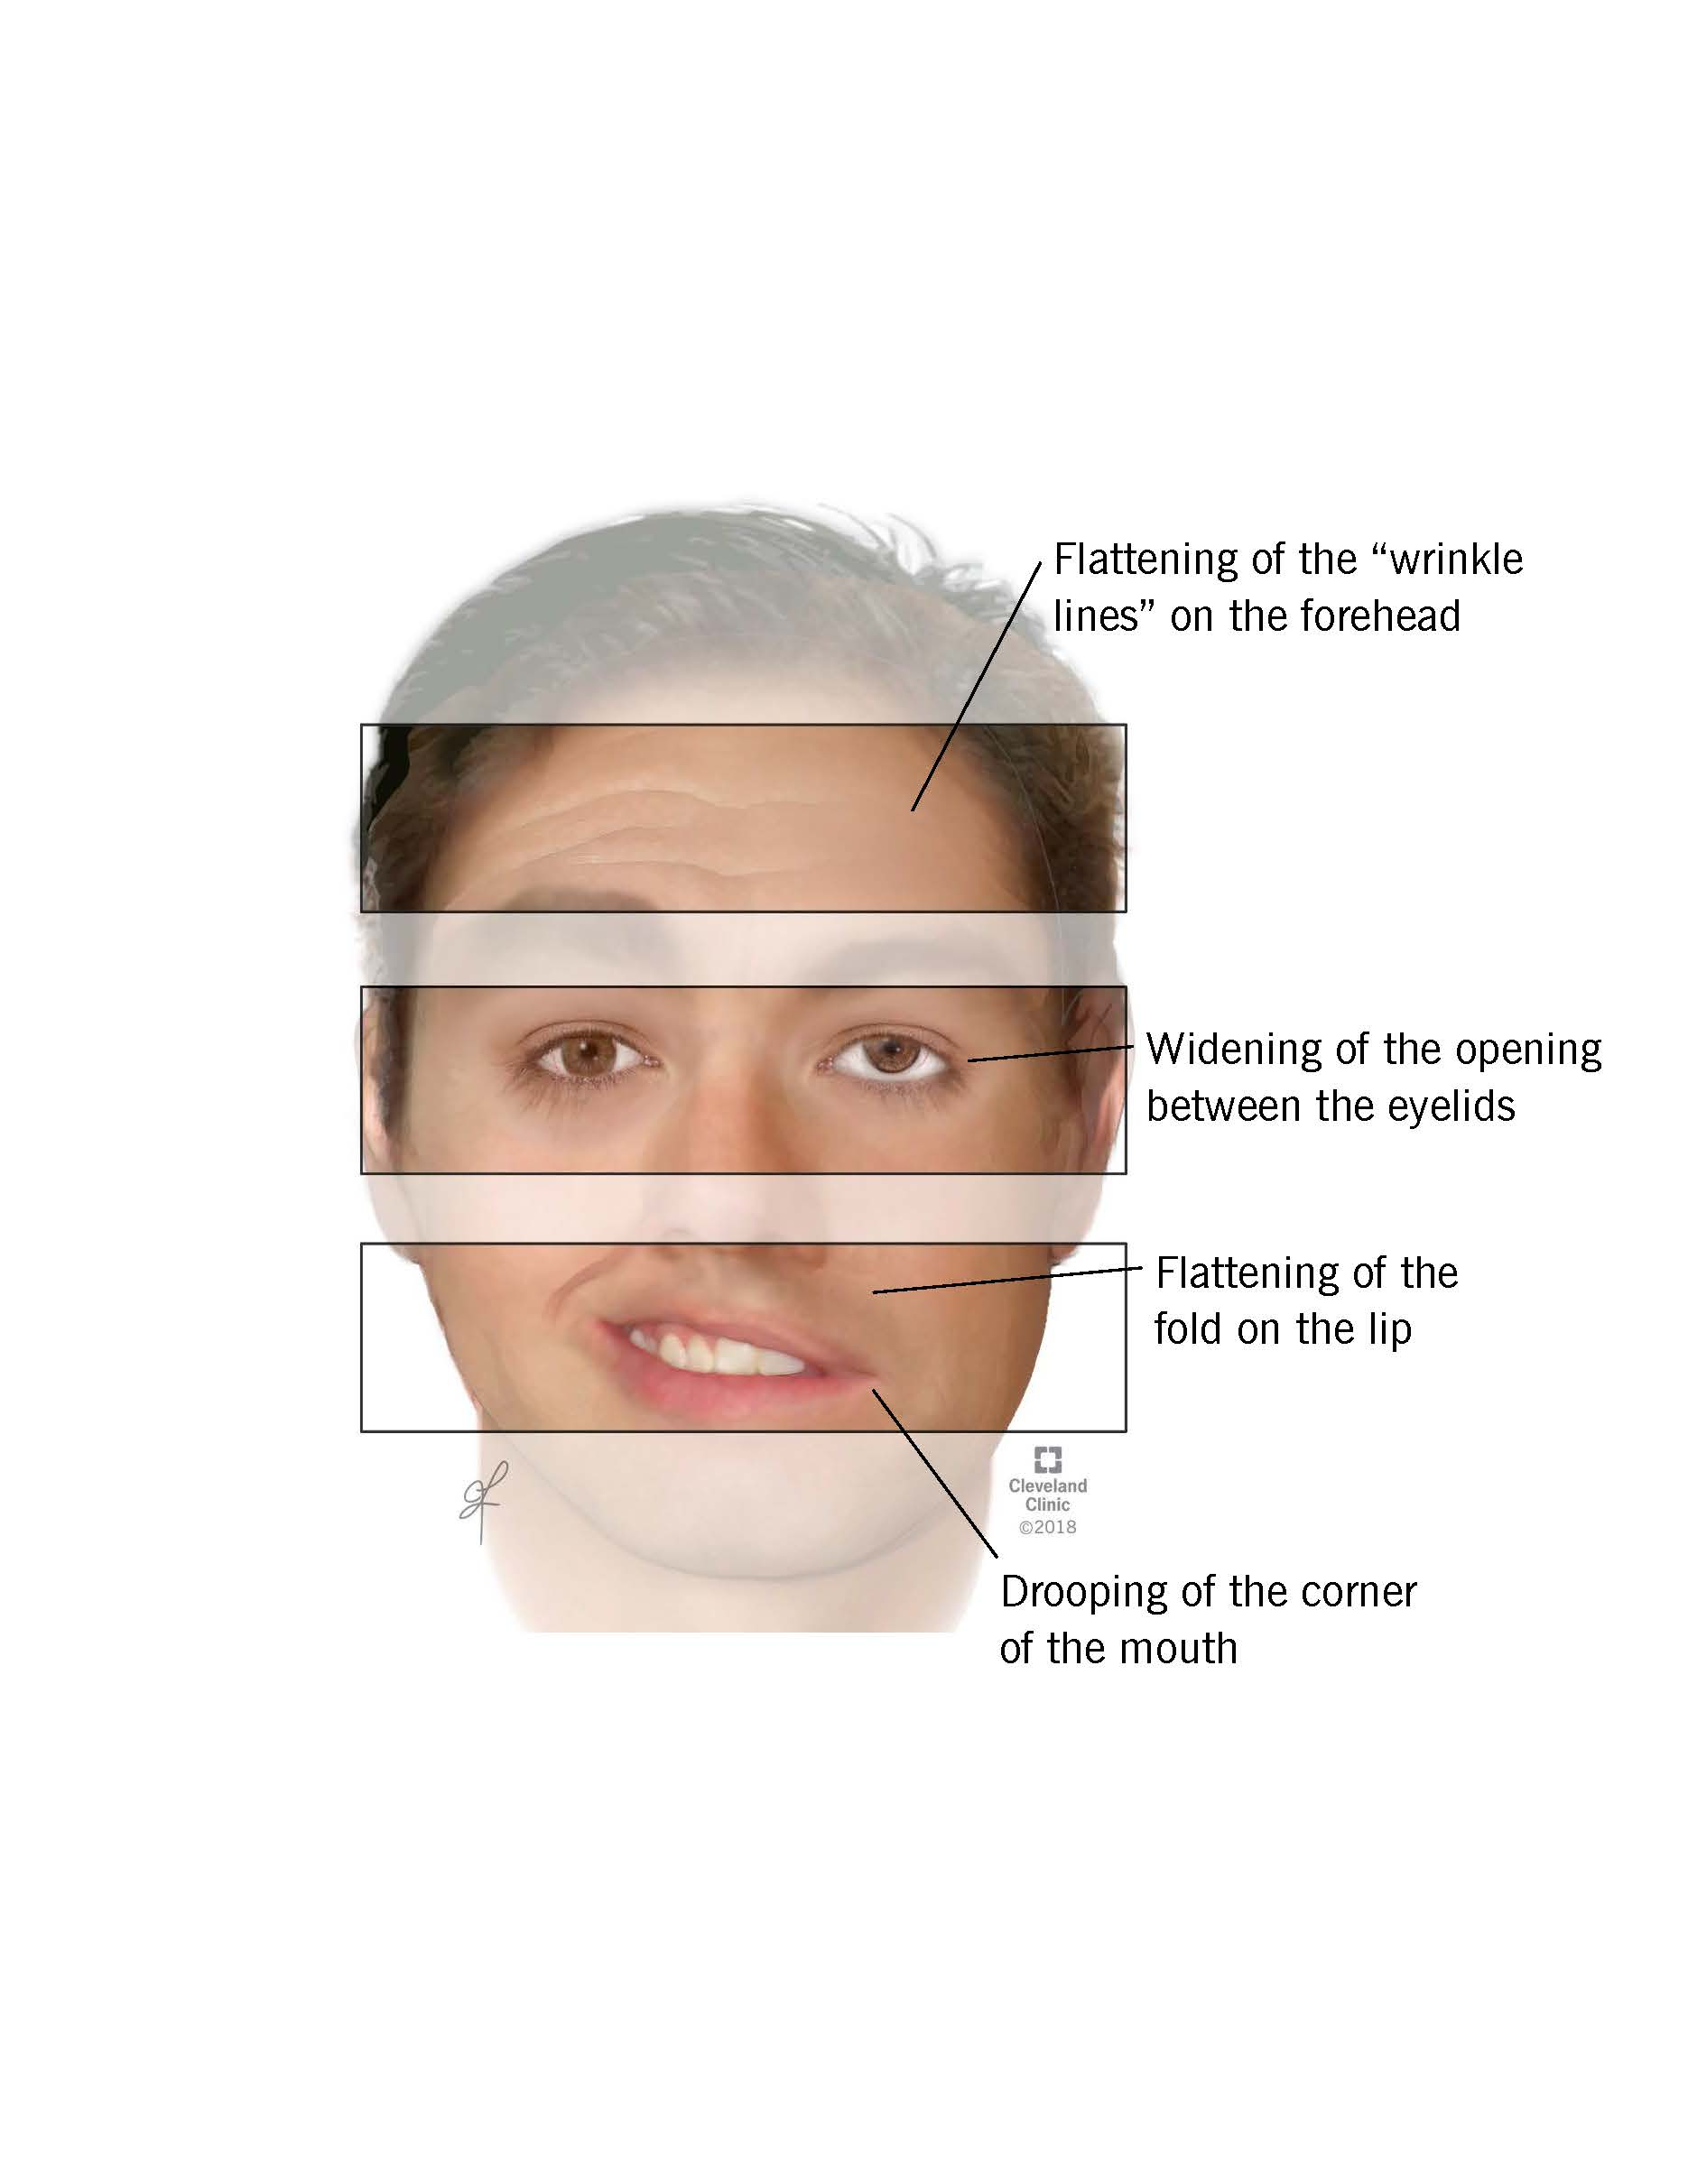 Facial symptoms of Bell's palsy.